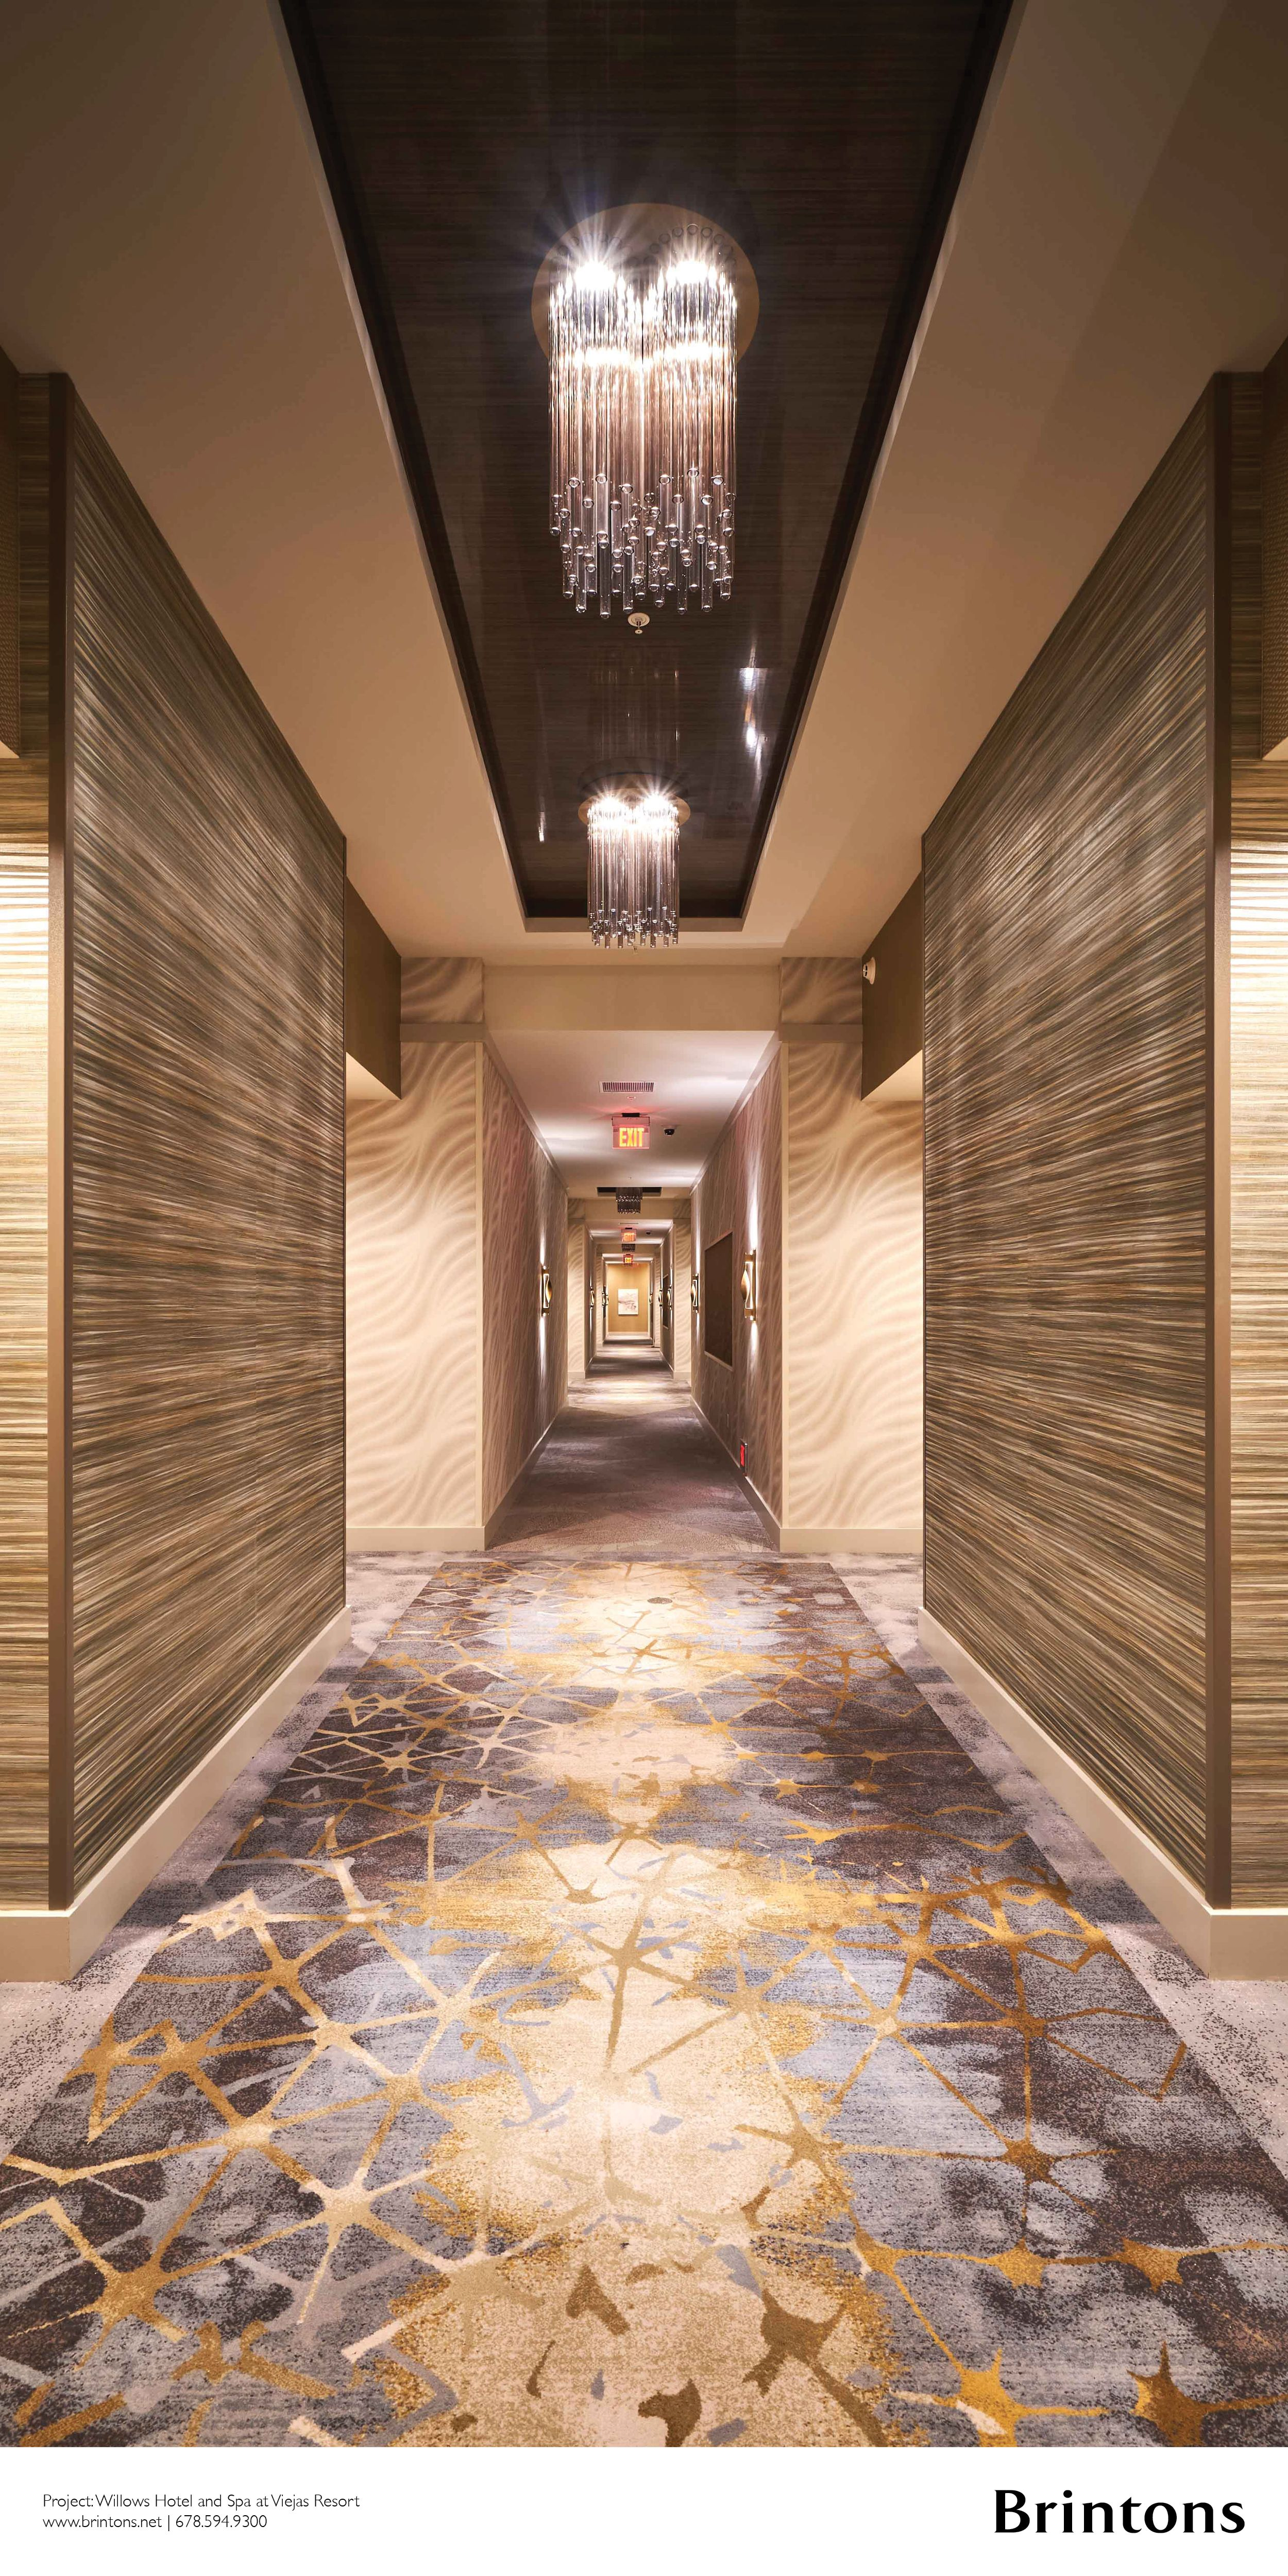 Brintons Collaborated With Igroup Design On Approximately 16,000 Square Yards